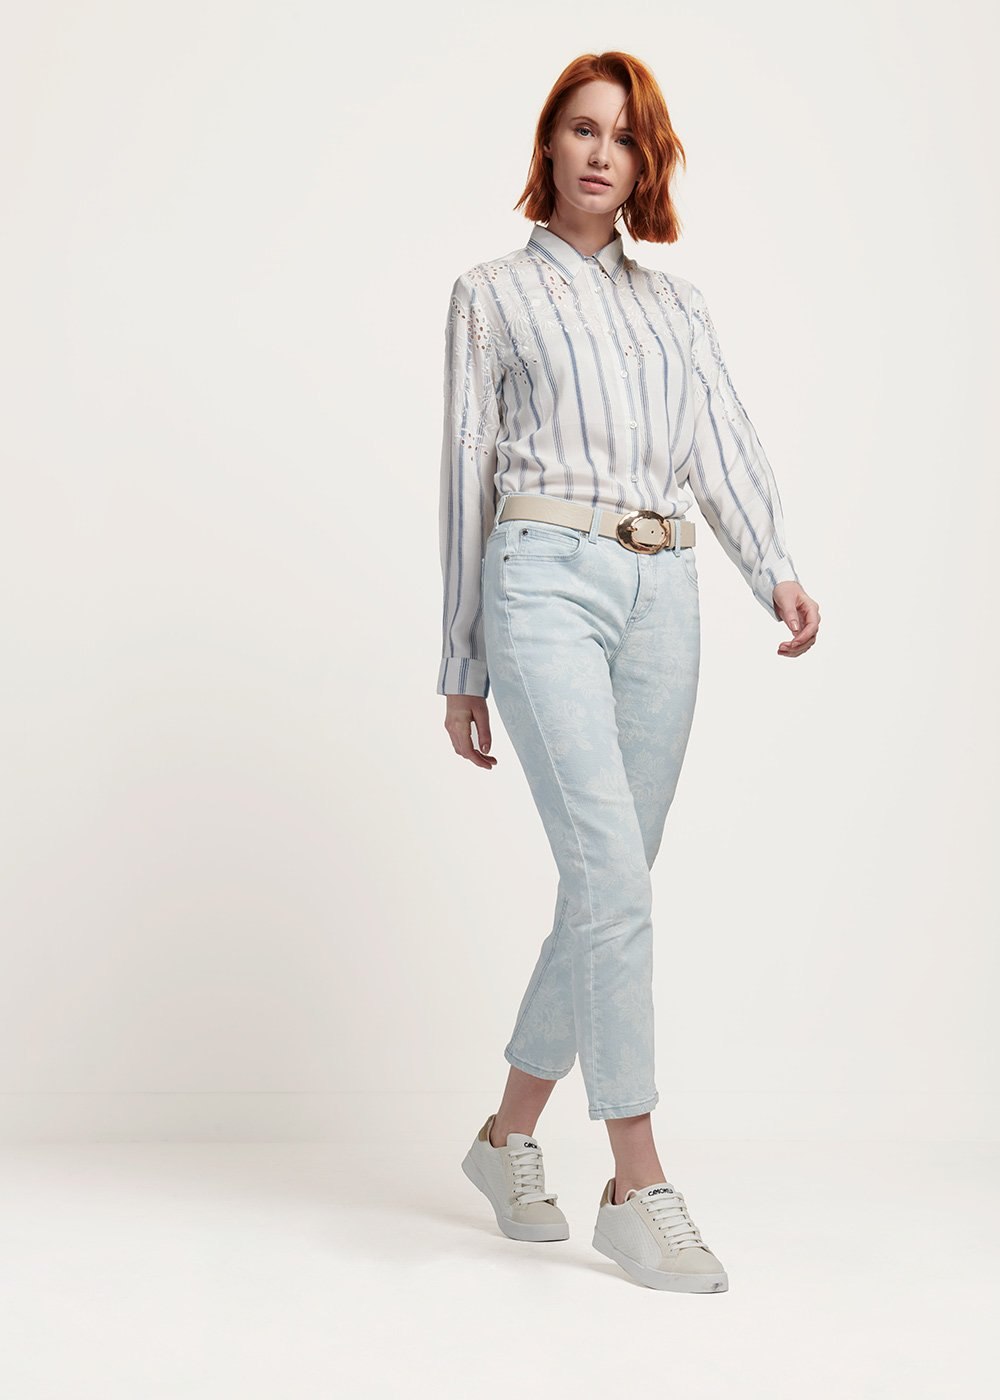 PEARL - Light Denim / White / Fantasia	 - Woman